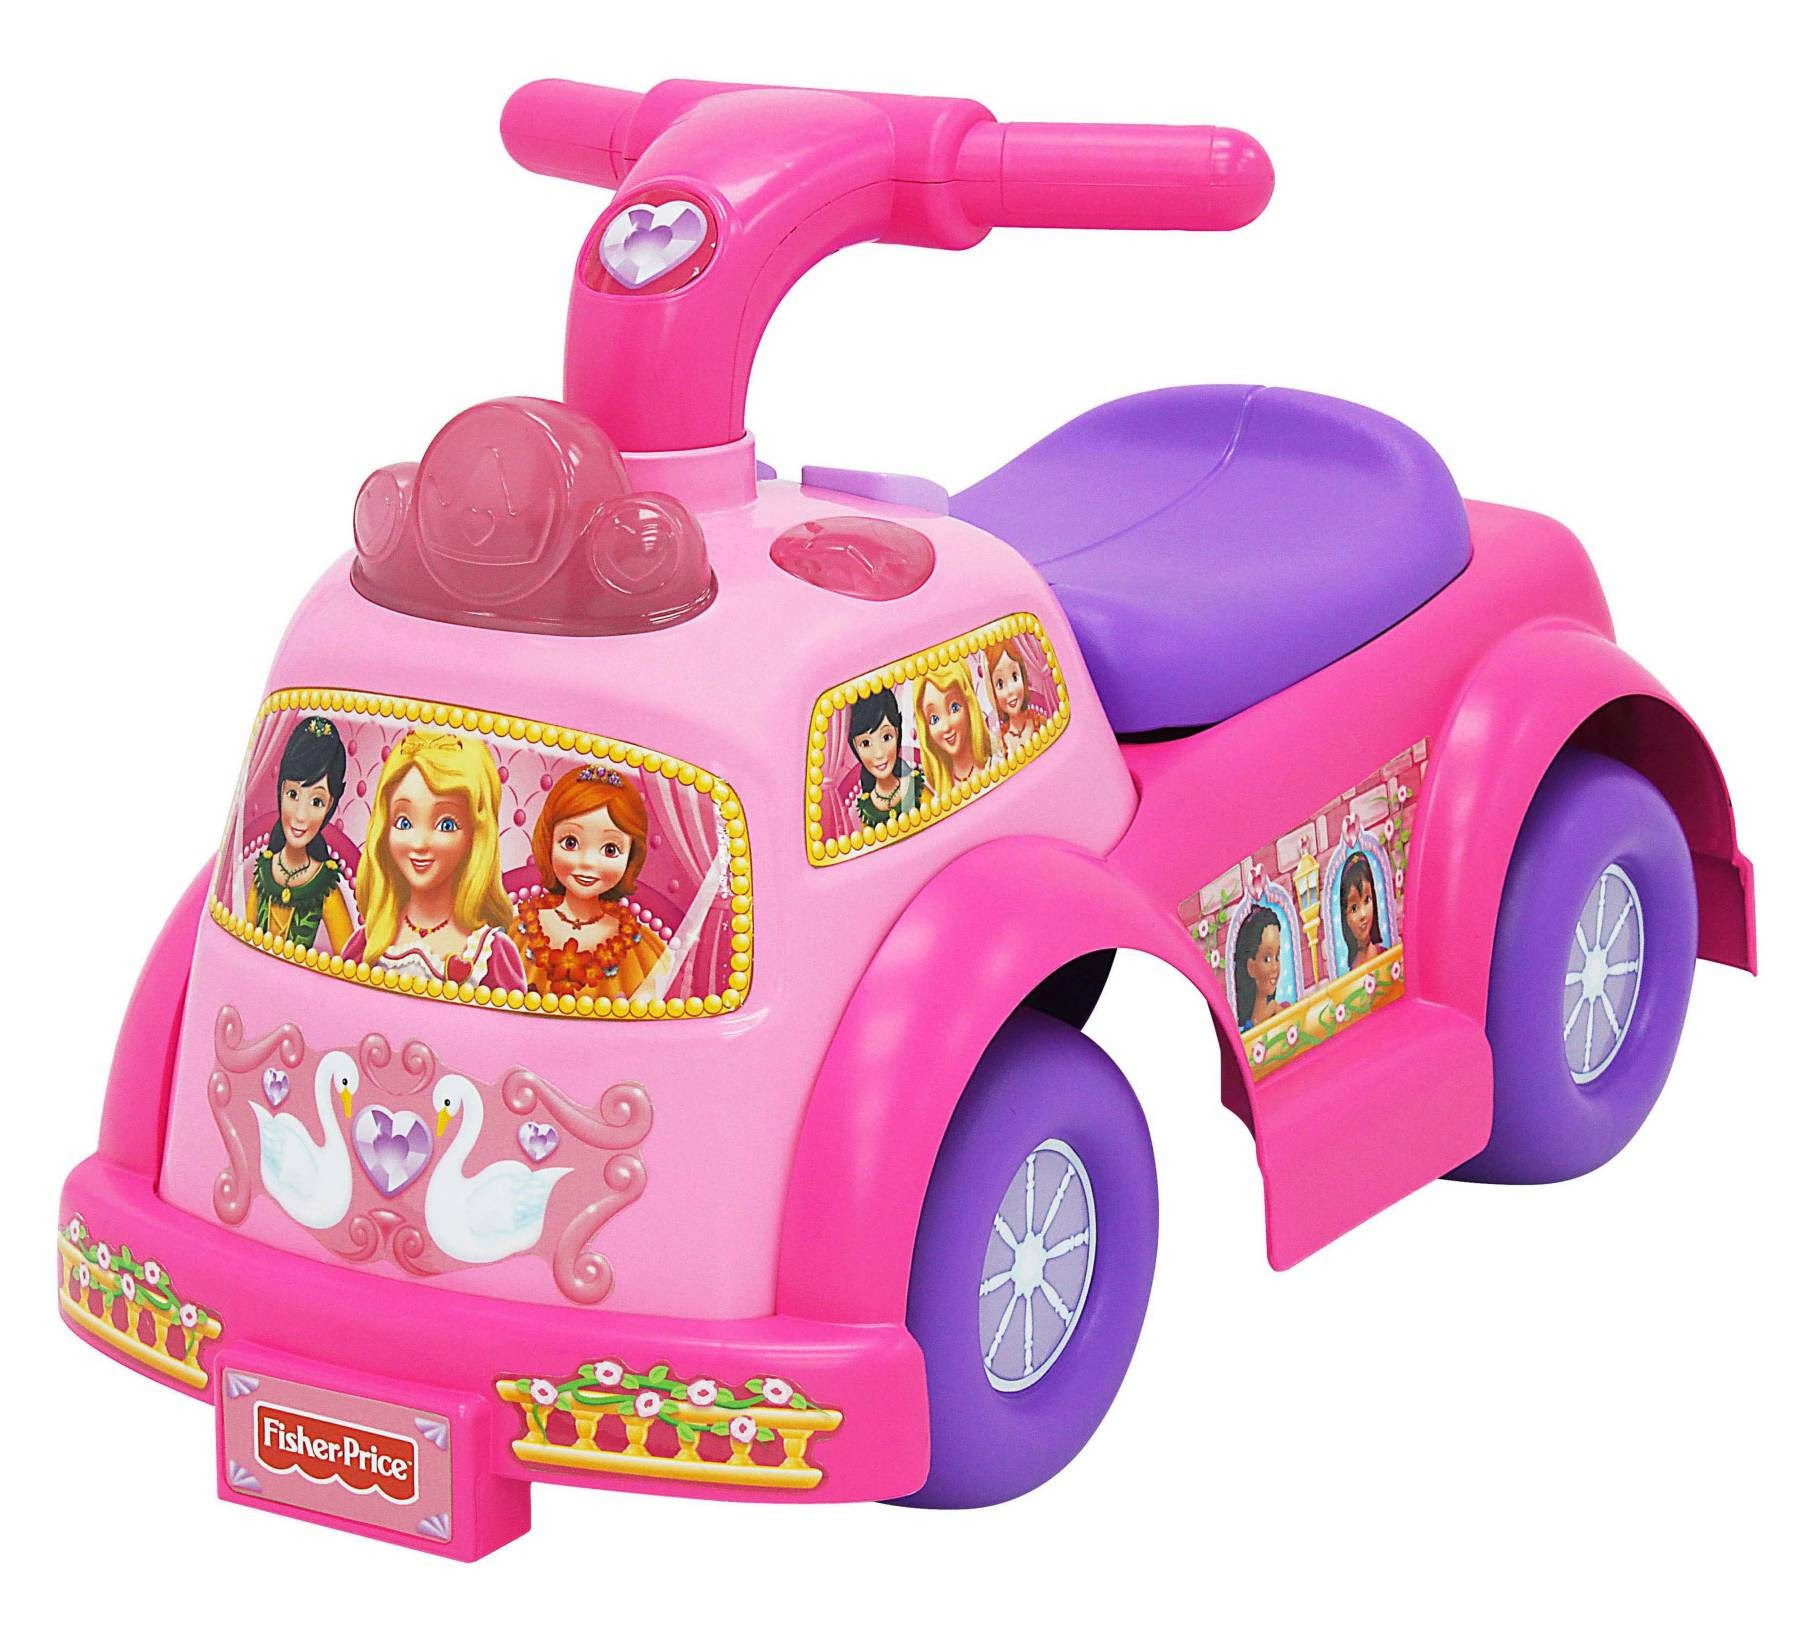 Toddler Toys People : Fisher price little people musical ride on baby toddler